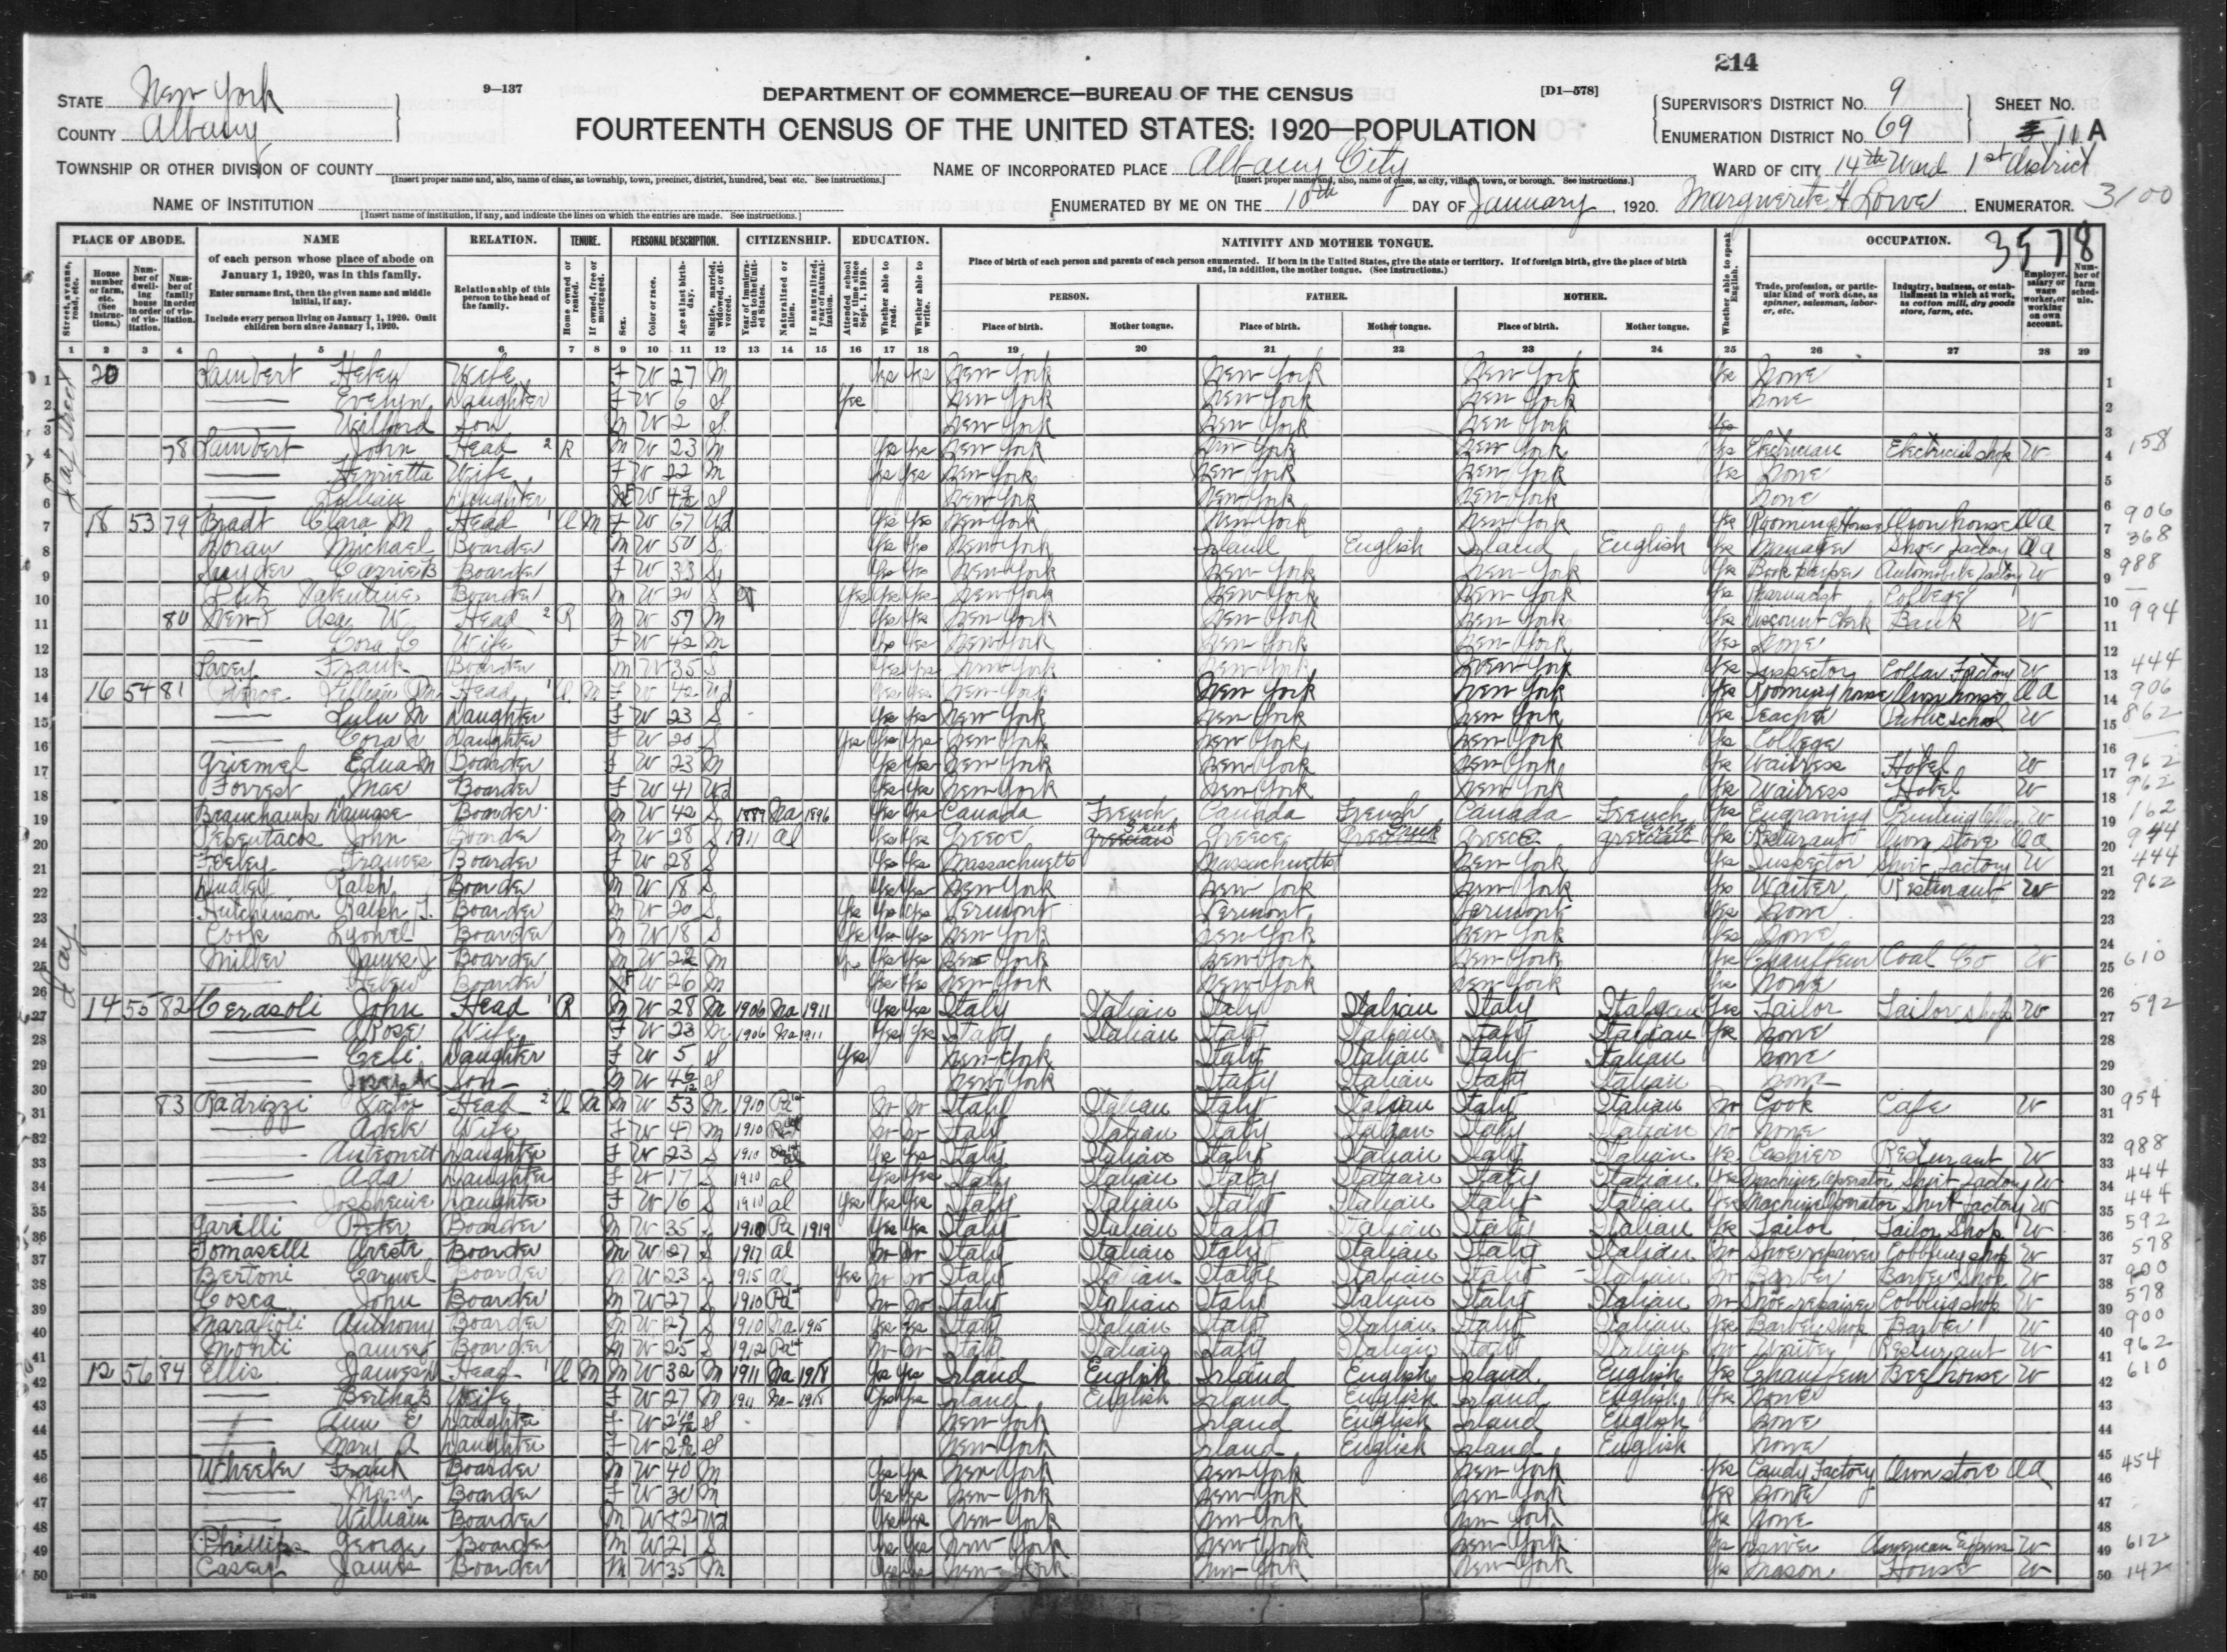 New York: ALBANY County, Enumeration District 69, Sheet No. 11A